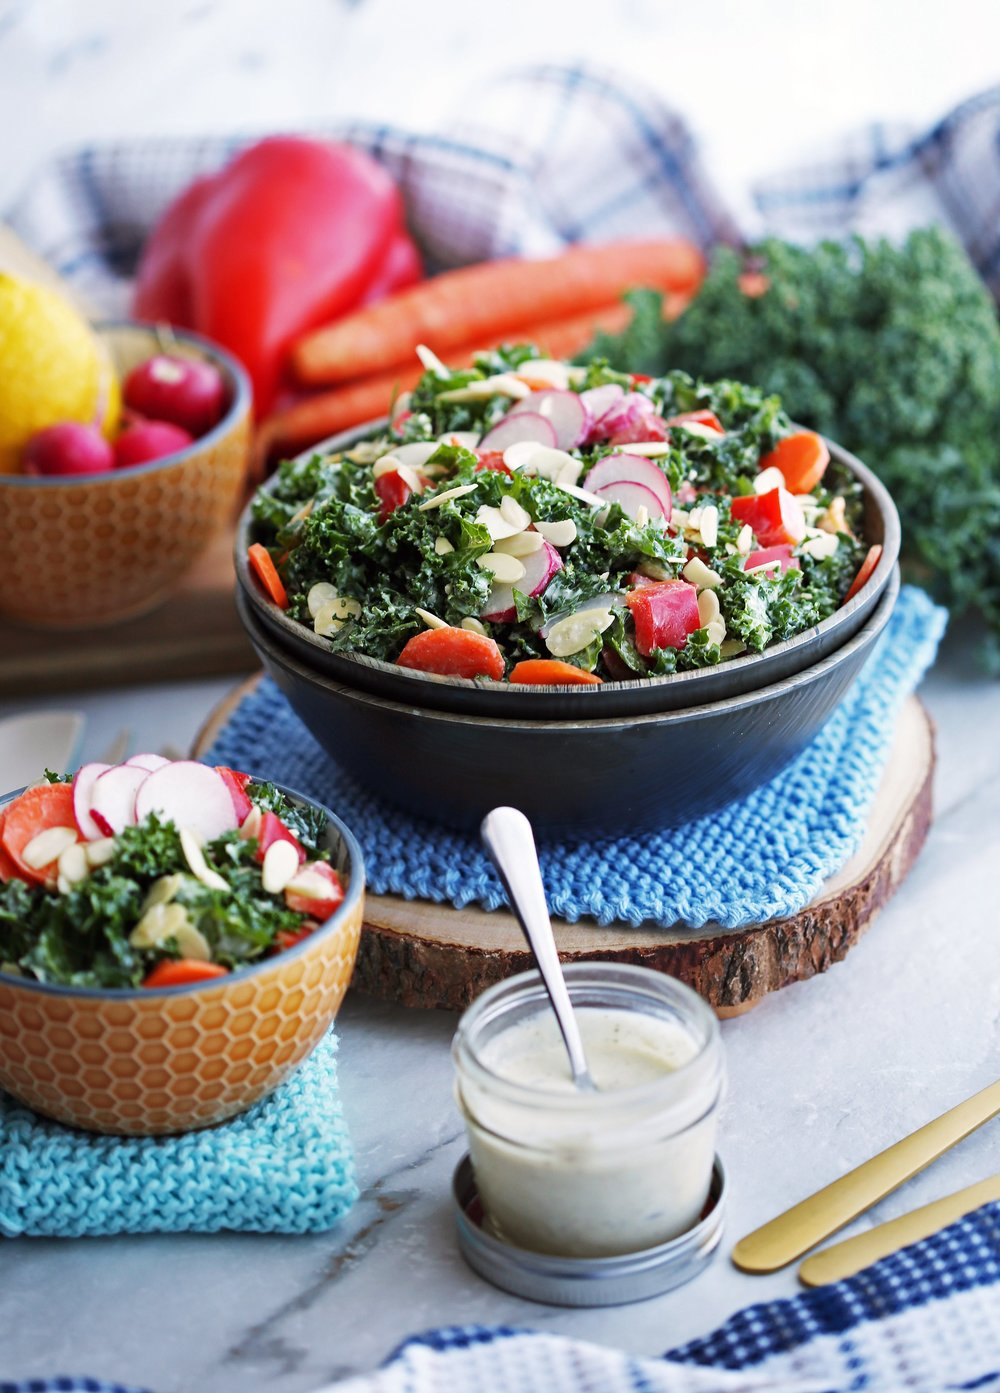 Crunchy Kale, Carrot, Pepper, and Radish Salad with Creamy Parmesan Yogurt Dressing in a wooden bowl and in a small orange bowl.